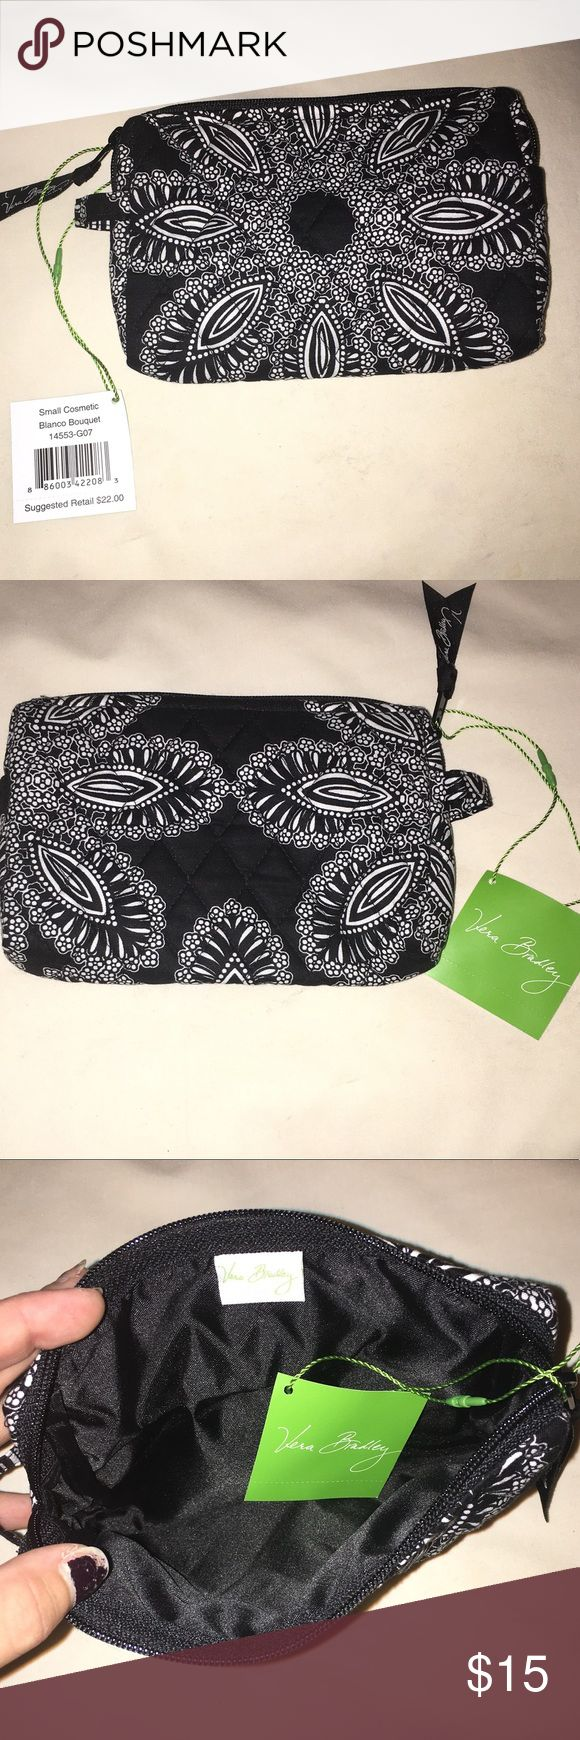 Travel cosmetic bag Very pretty pattern and it is brand new!! Vera Bradley Bags Cosmetic Bags & Cases